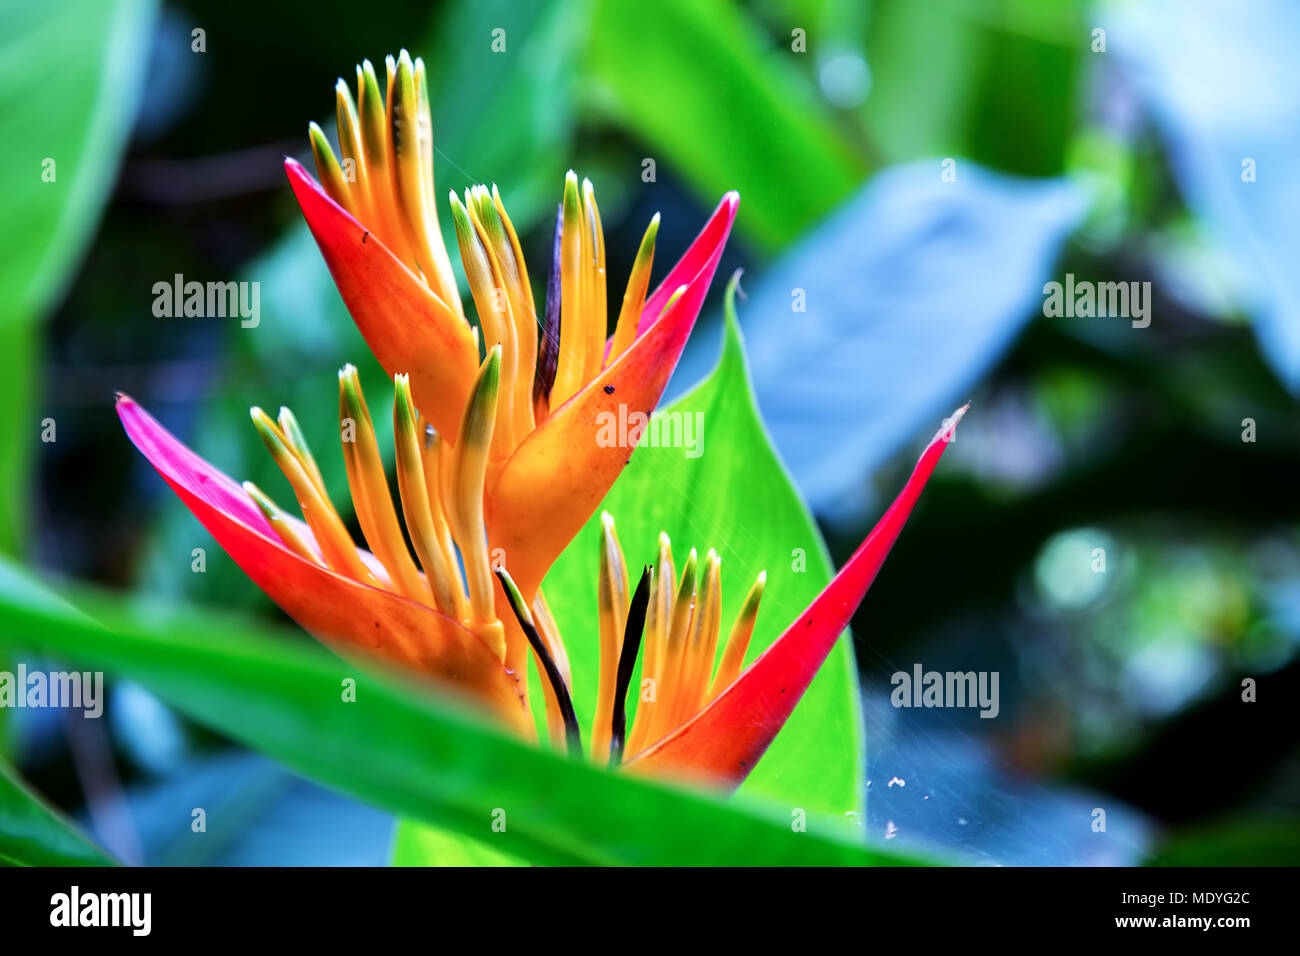 The heliconia flower really looks like flames. - Stock Image